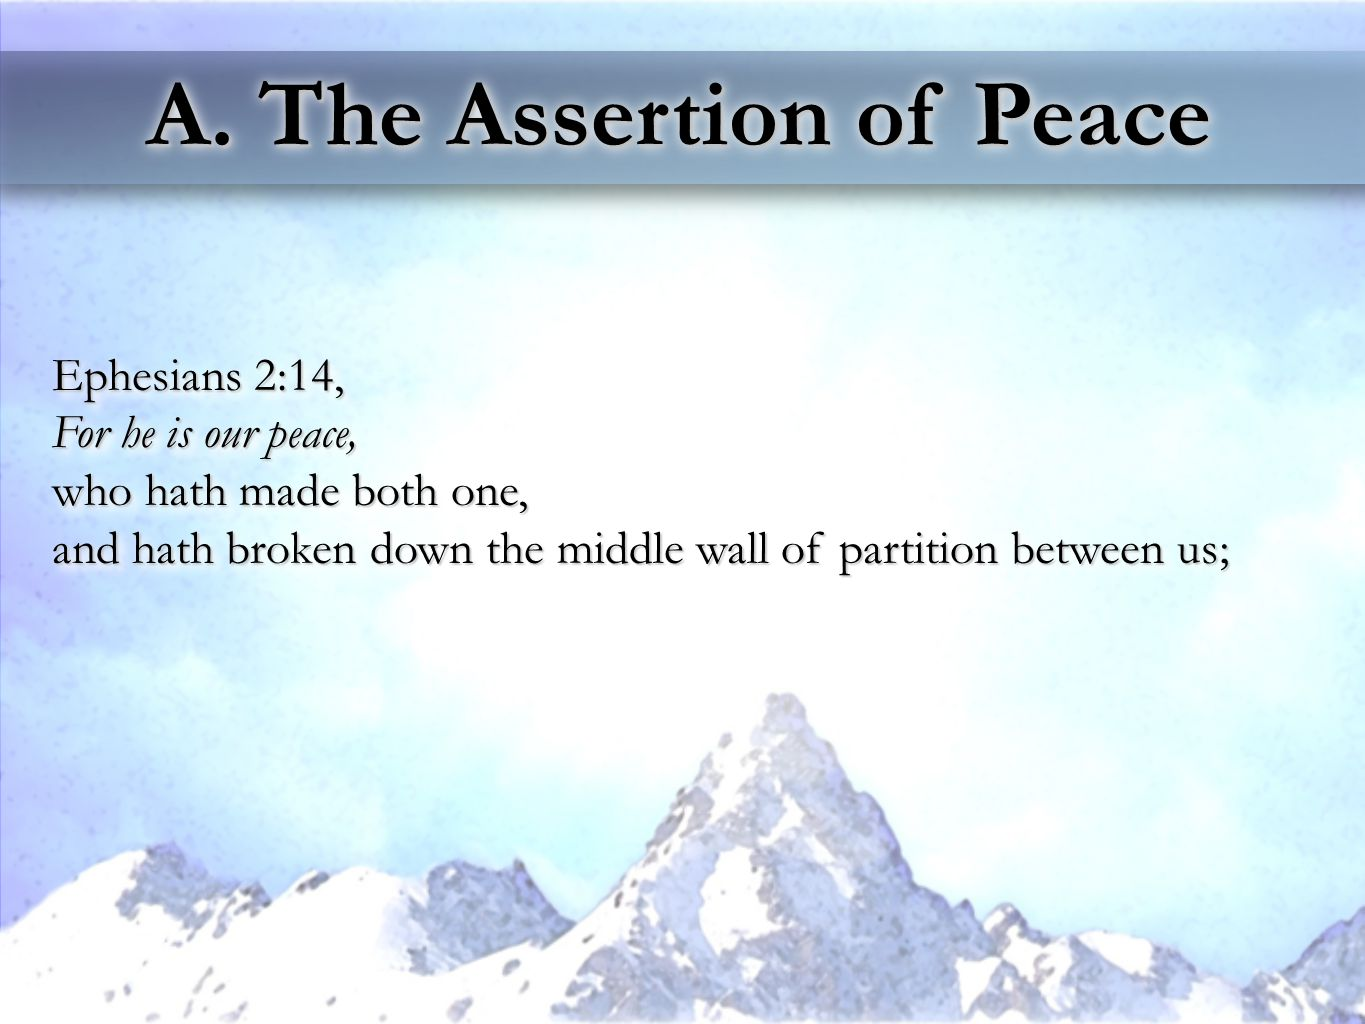 A. The Assertion of Peace Ephesians 2:14, For he is our peace, who hath made both one, and hath broken down the middle wall of partition between us; E